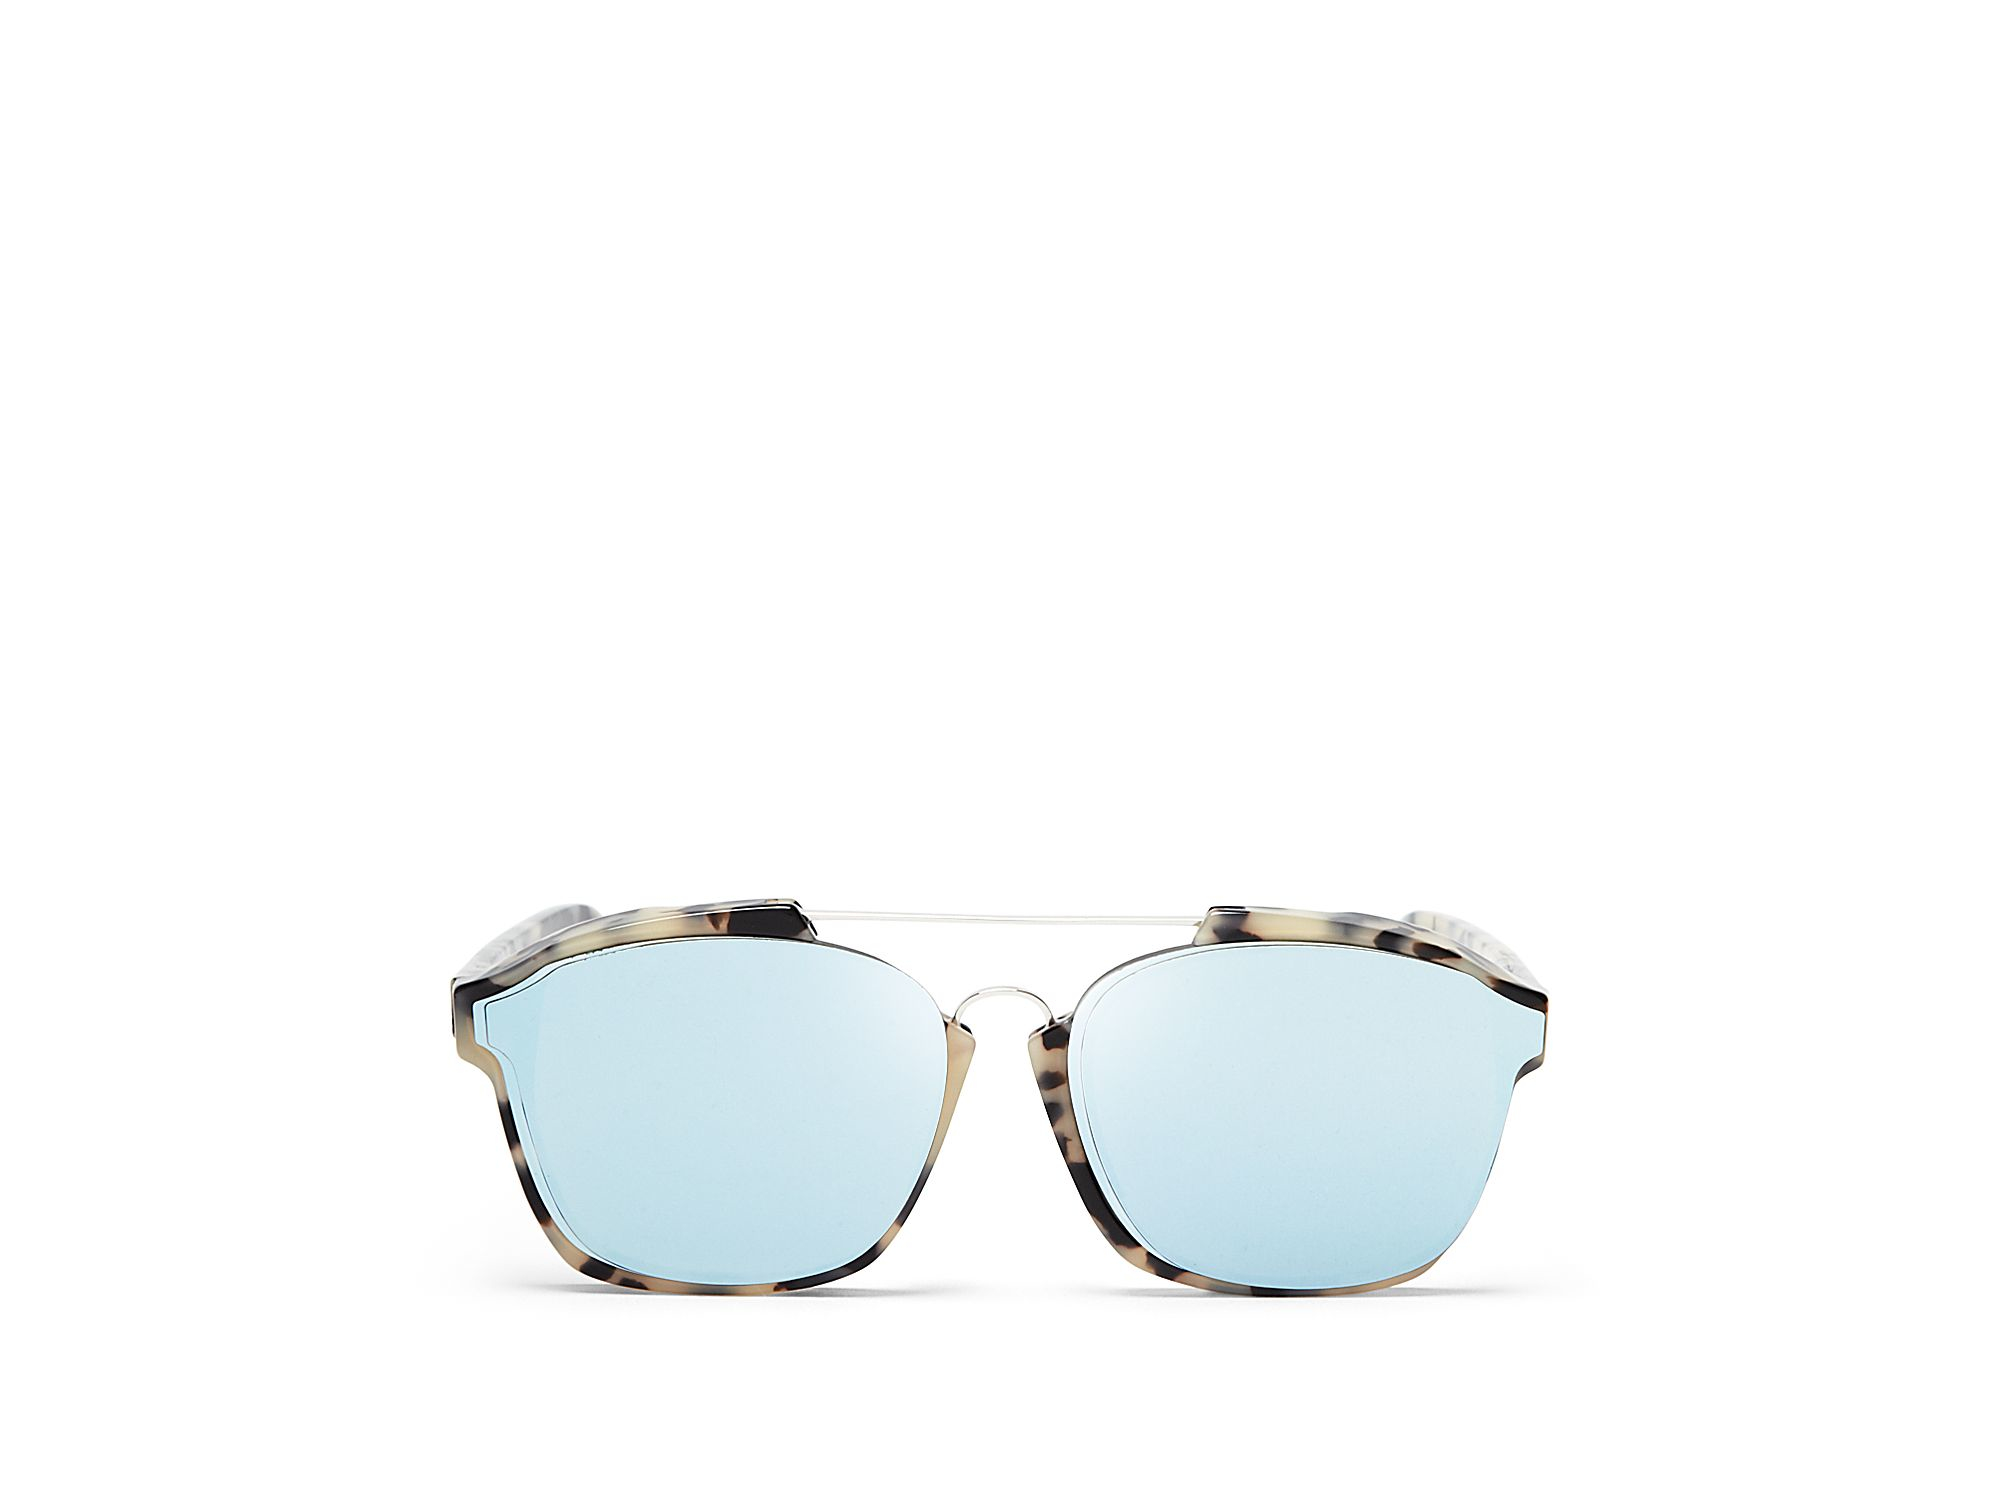 0dc059a2bc24d Gallery. Previously sold at  Bloomingdale s · Women s Mirrored Sunglasses